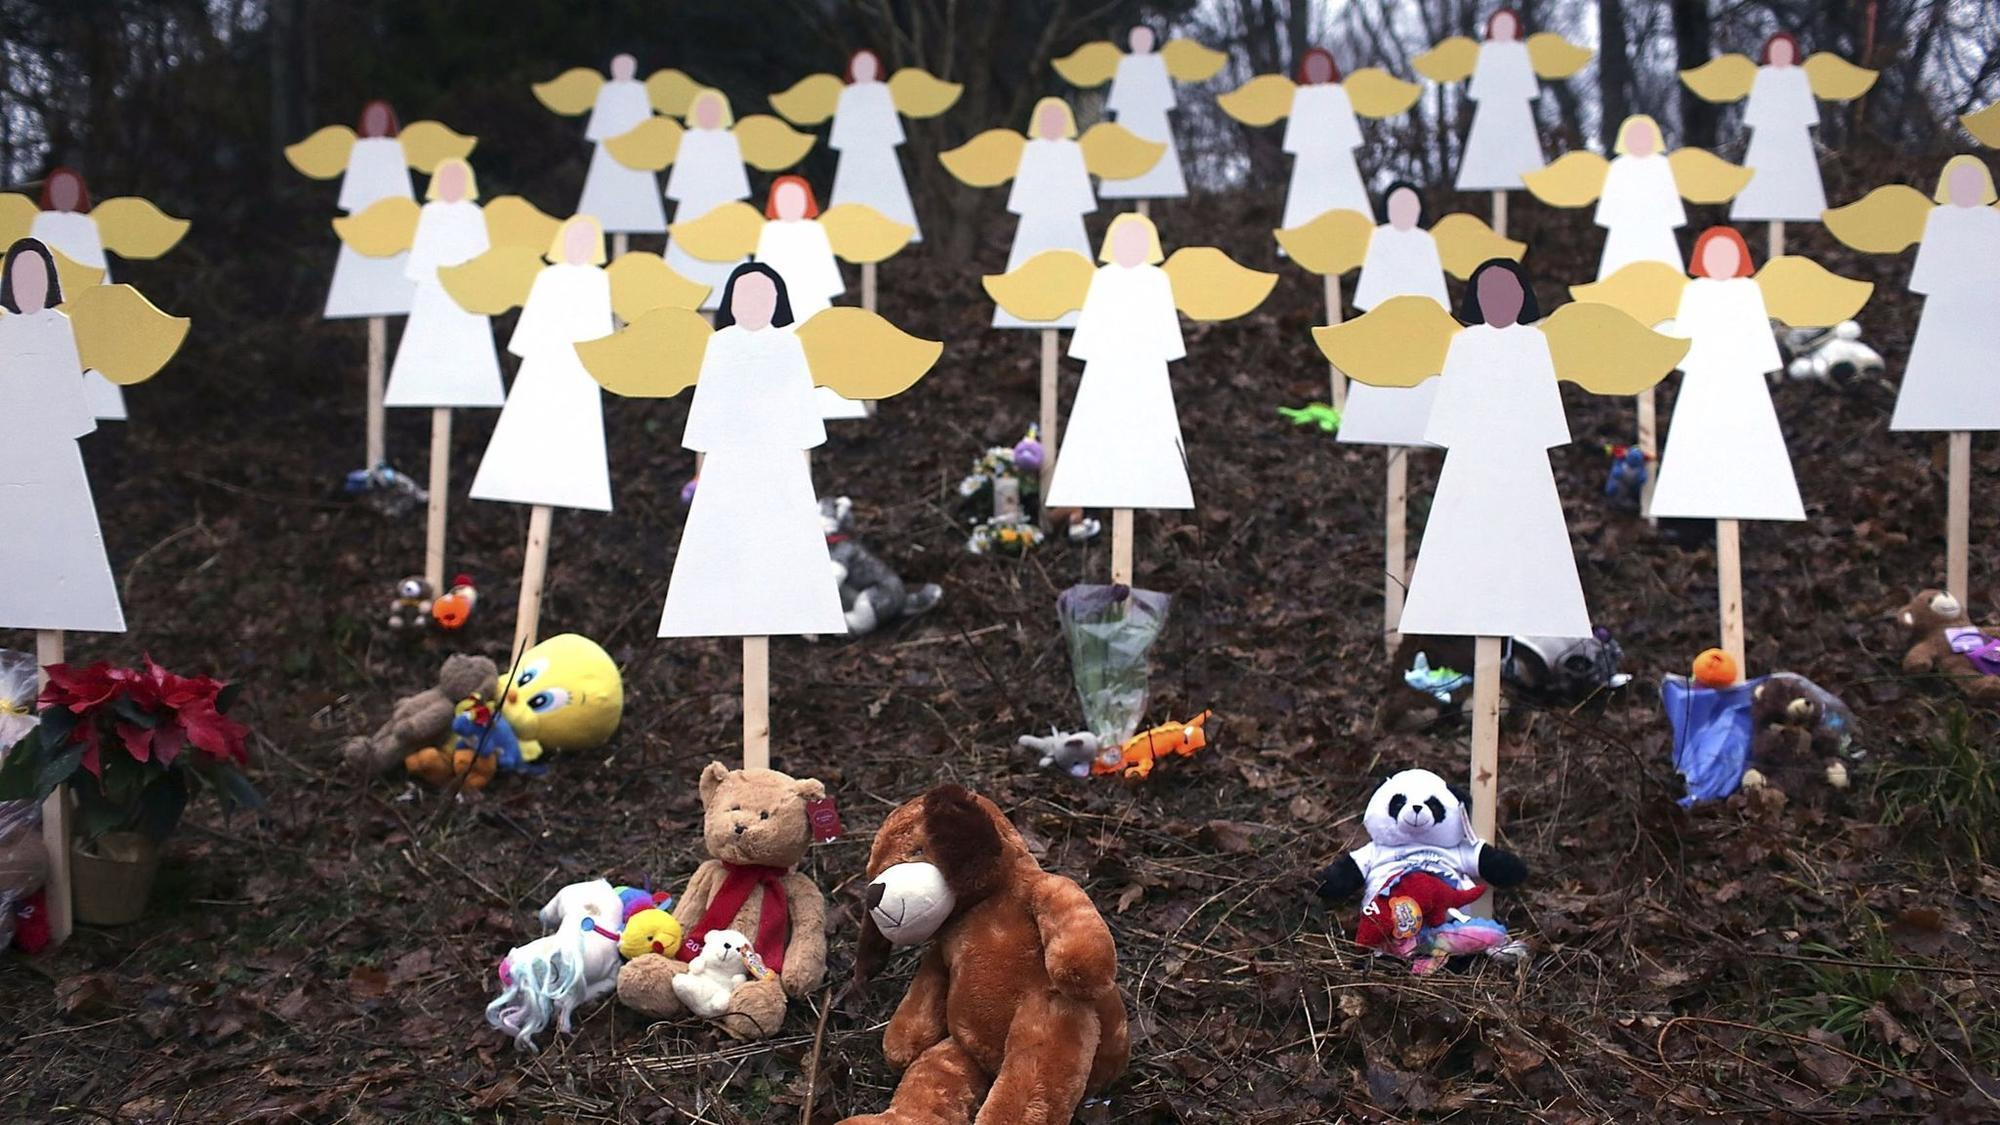 Add at least 57 to the number of gun-related deaths tied to the Sandy Hook mass shooting